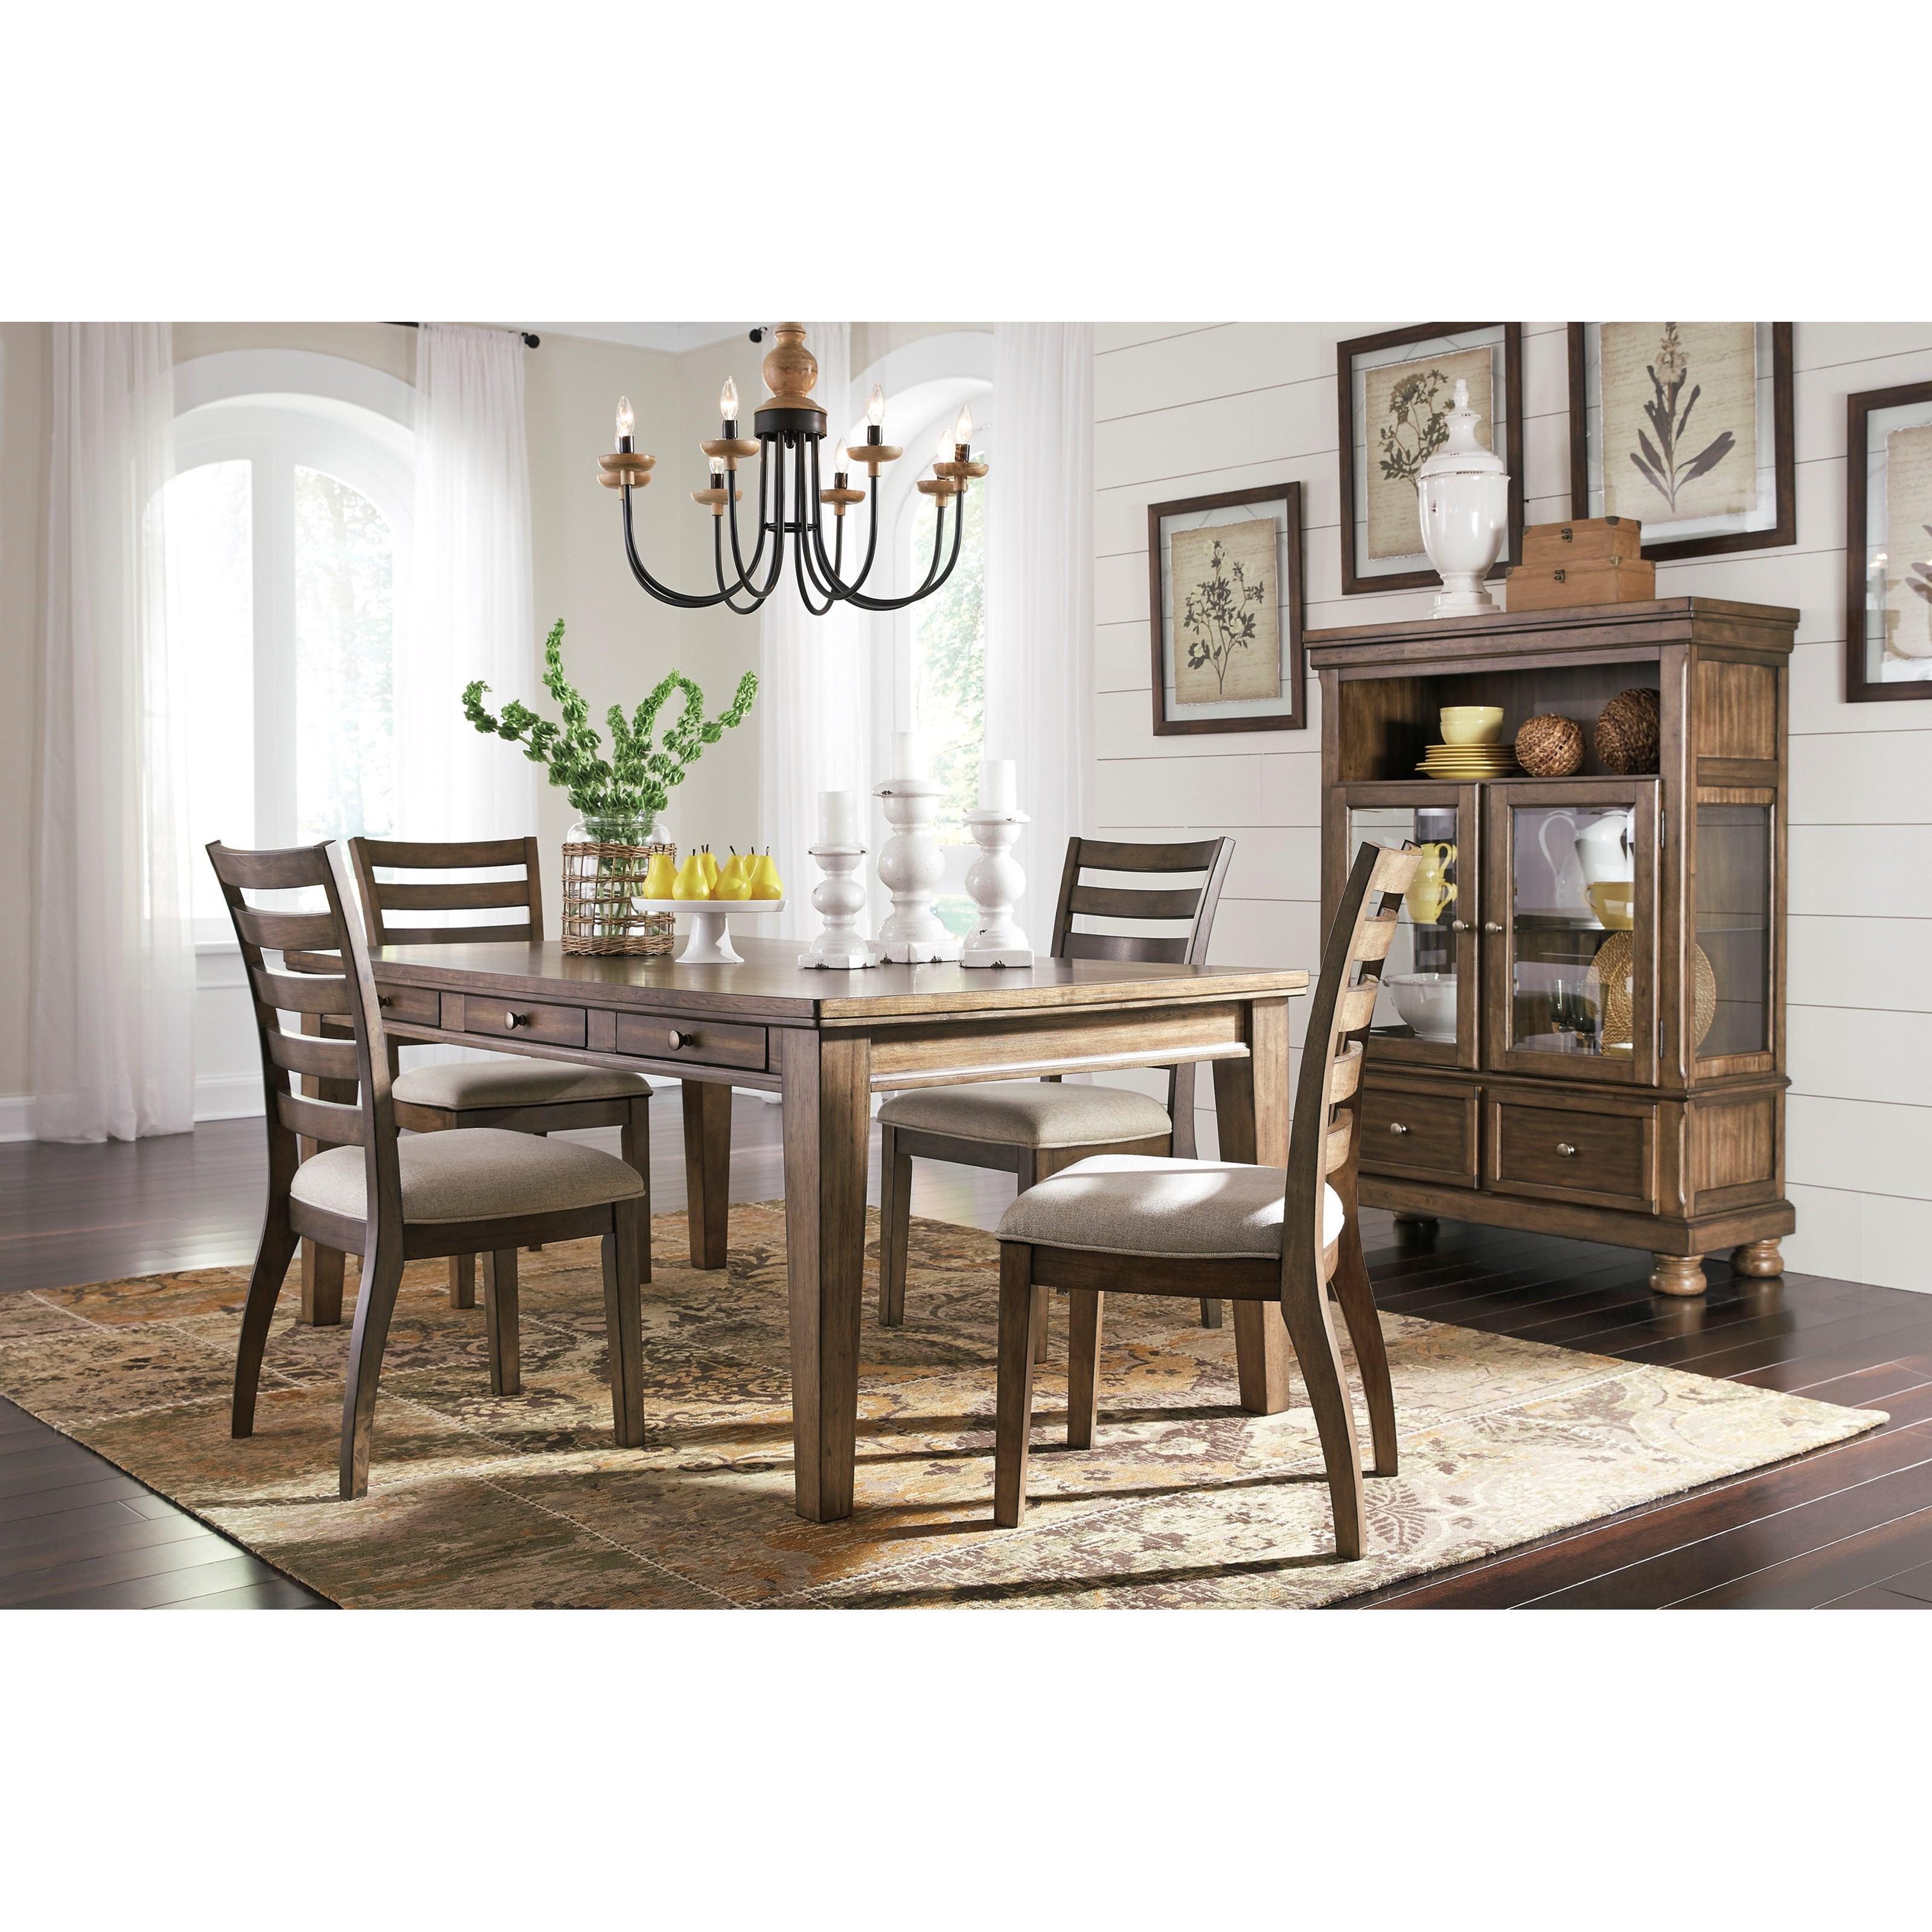 Levitz Furniture Store Locations: Signature Design By Ashley Flynnter D719-86 Dining Curio